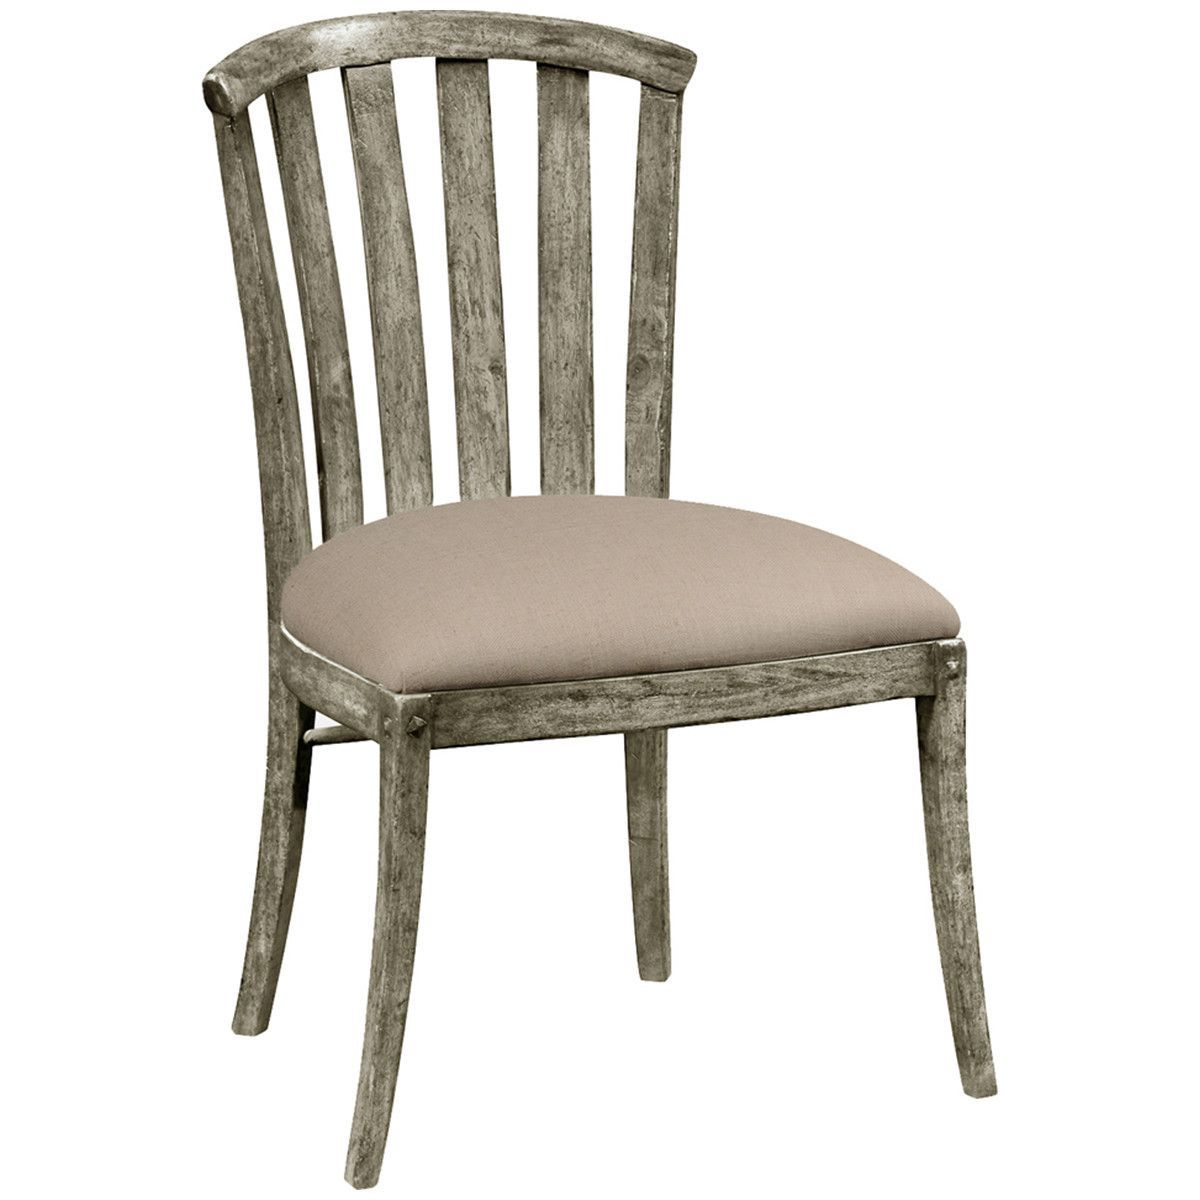 Jonathan Charles Rustic Grey Style Curved Back Chair